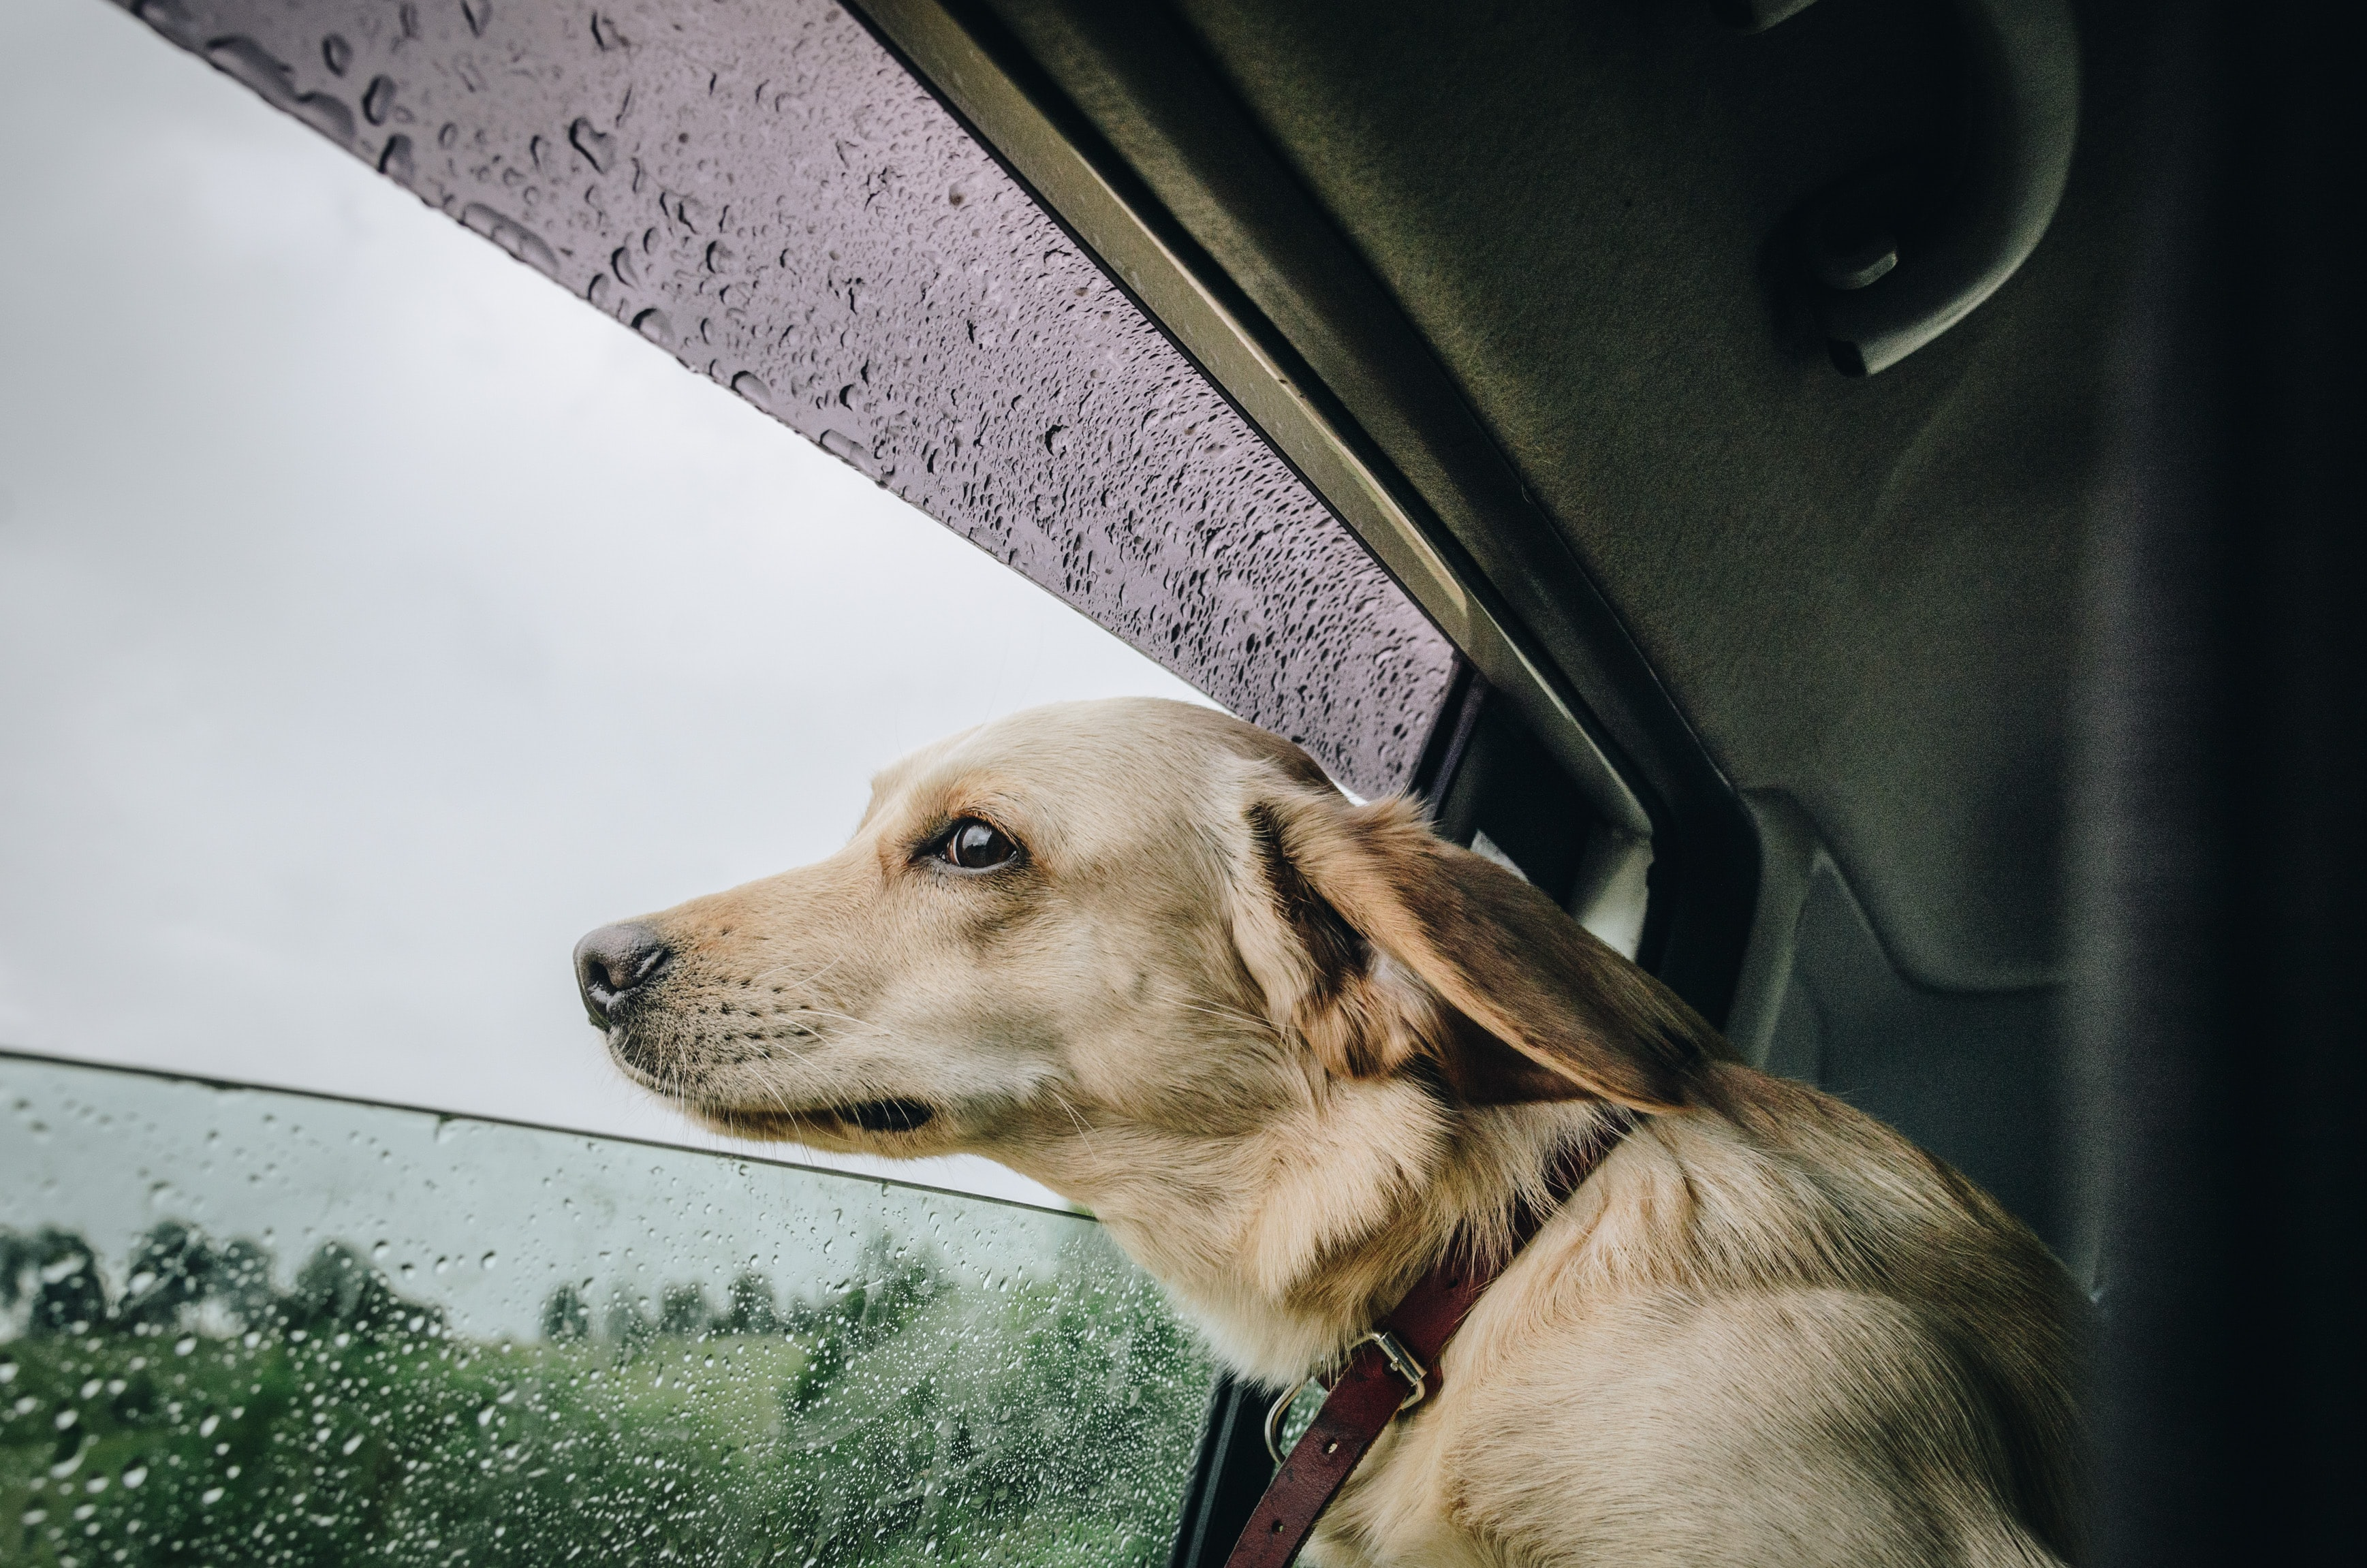 yellow Labrador retriever sneaking on vehicle window